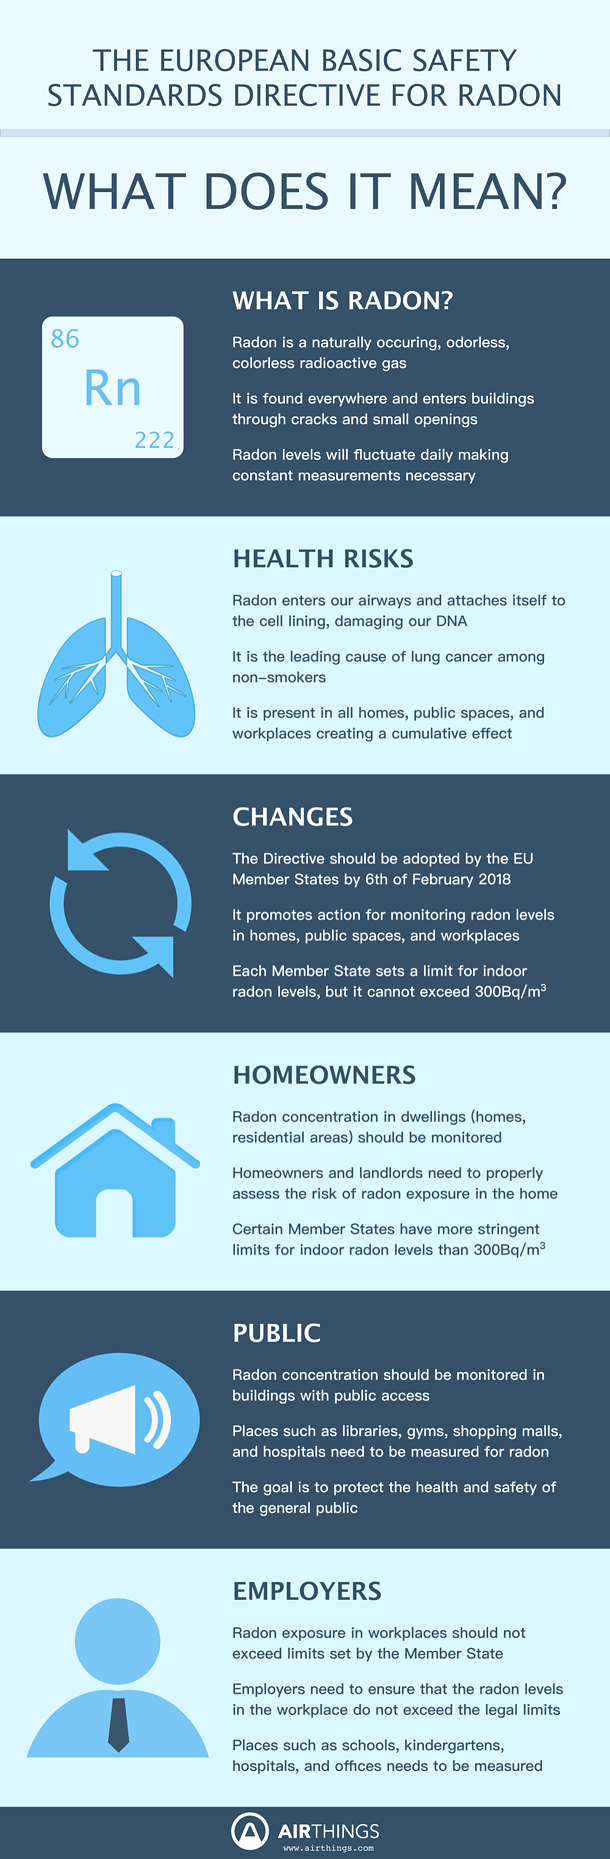 Infographic on EUROPEAN/EURATOM basic safety standards for radon